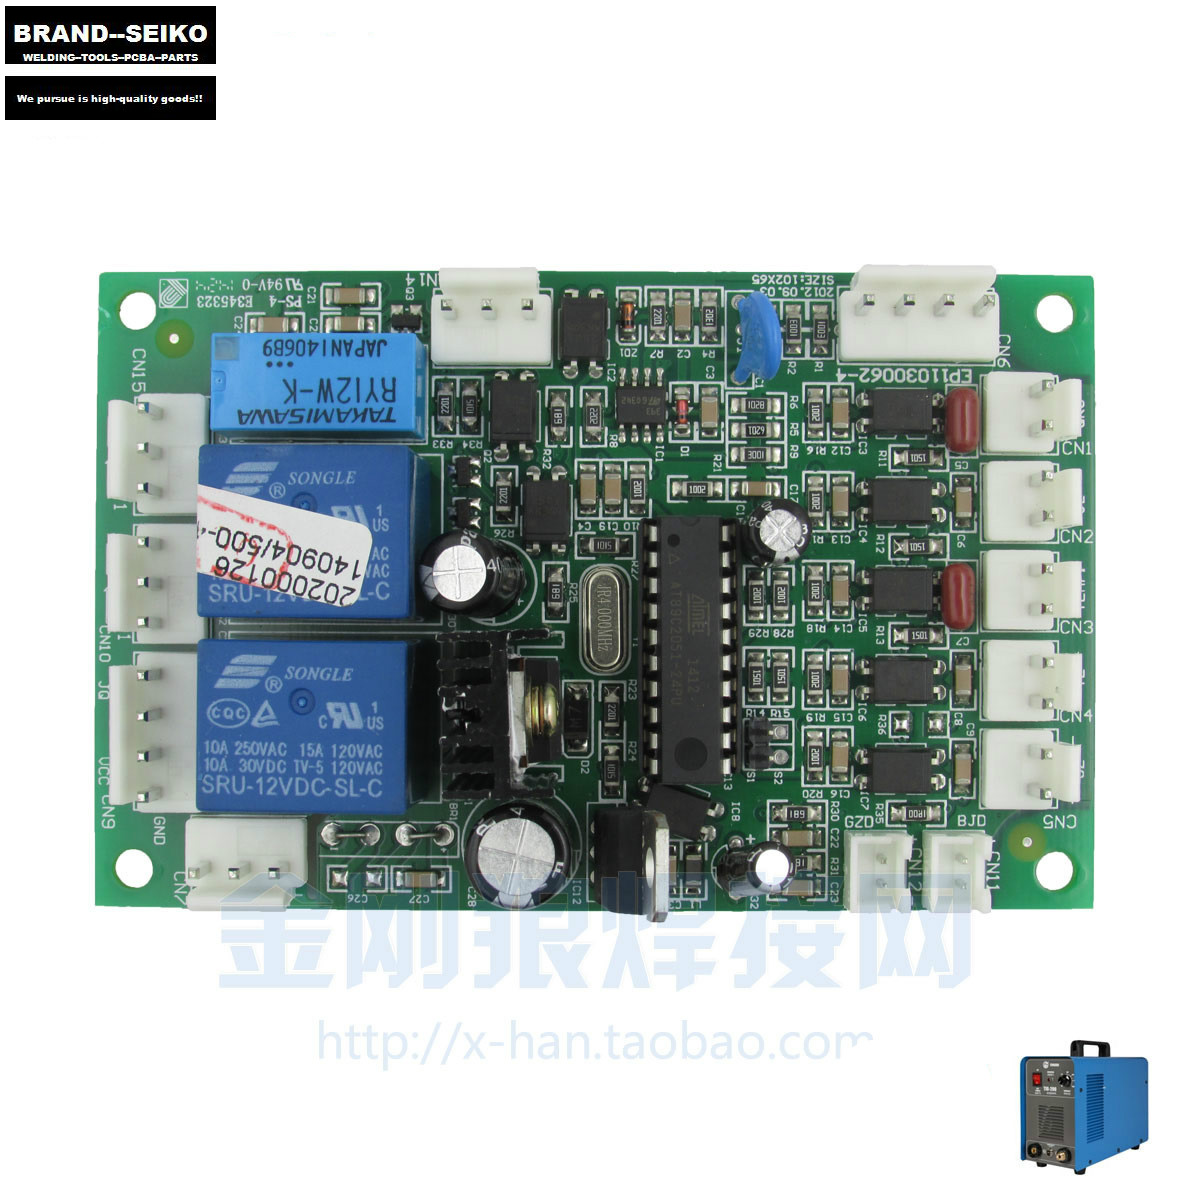 TIG200L TIG200LS argon arc welding machine timing board panel-in Tool Parts  from Tools on Aliexpress.com | Alibaba Group